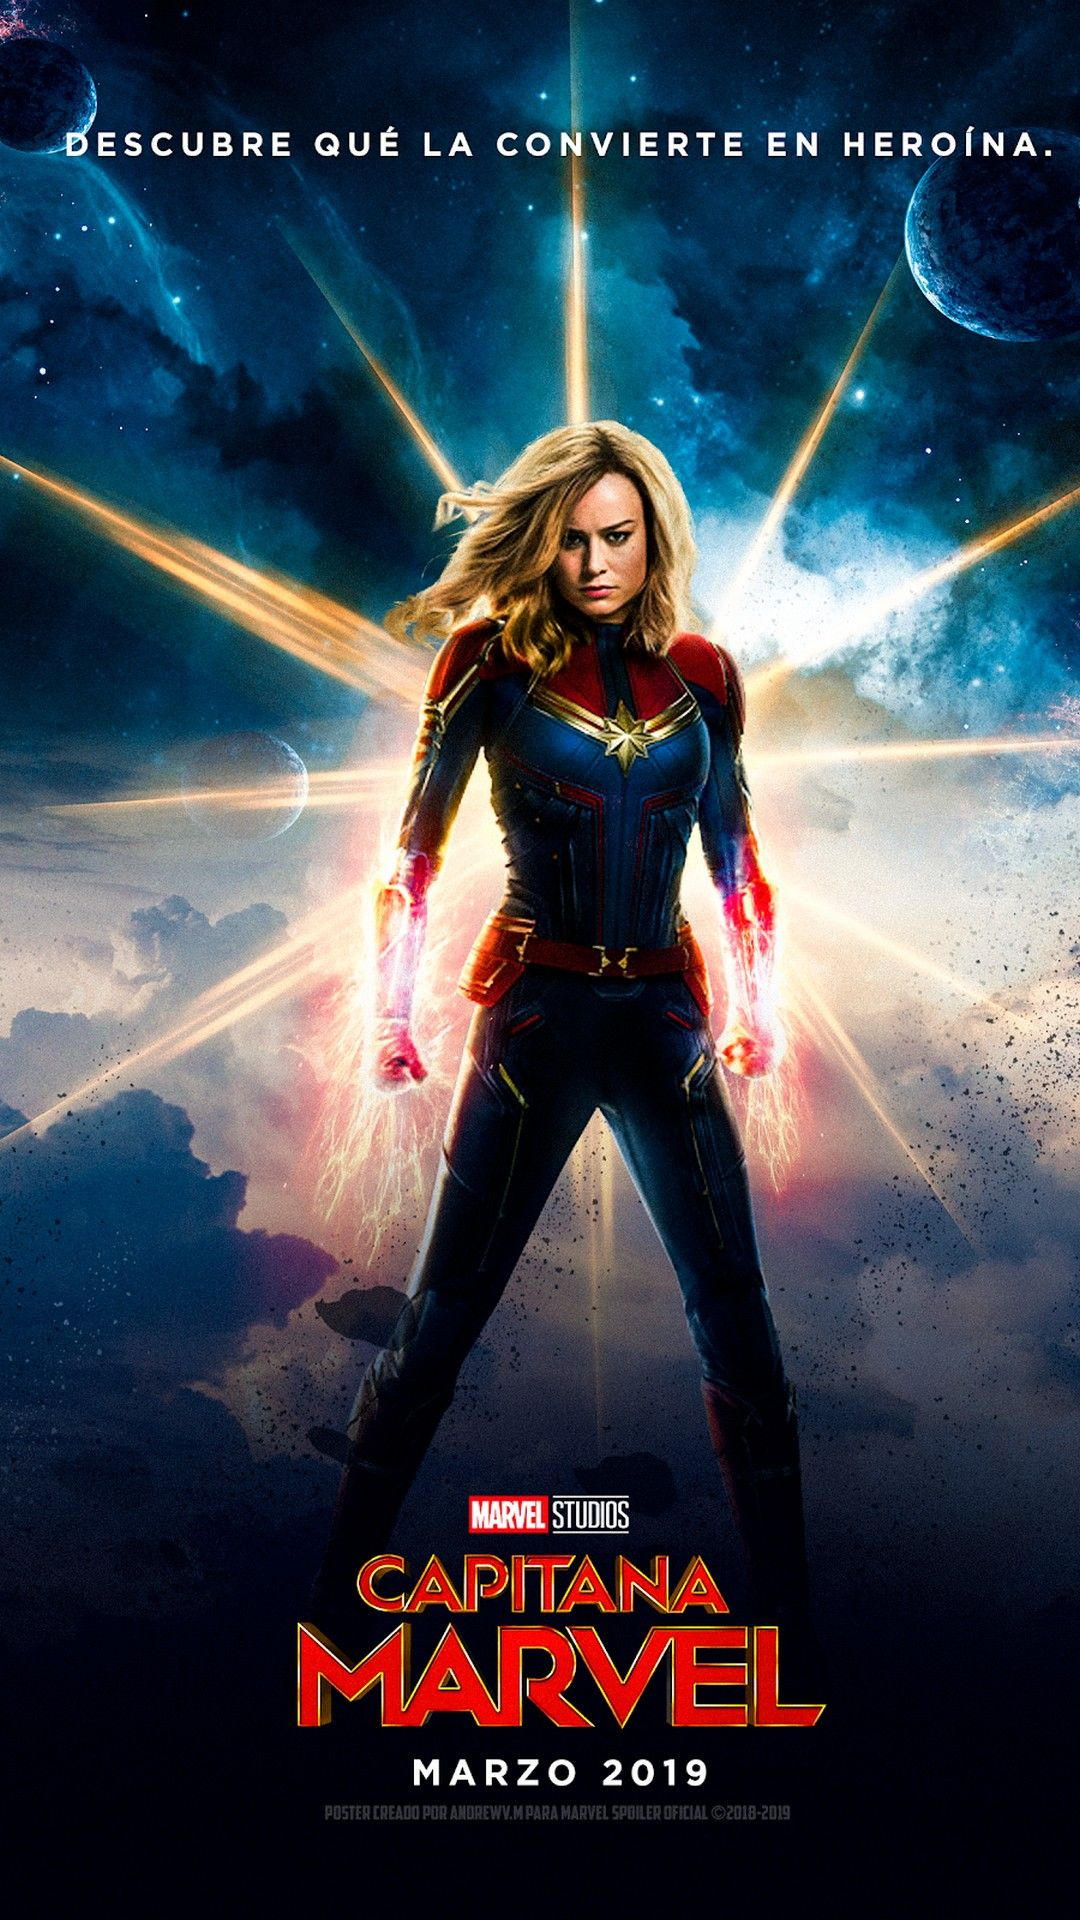 Captain Marvel Android Wallpaper Best Movie Poster Wallpaper Hd Captain Marvel Marvel Superheroes Captain Marvel Carol Danvers